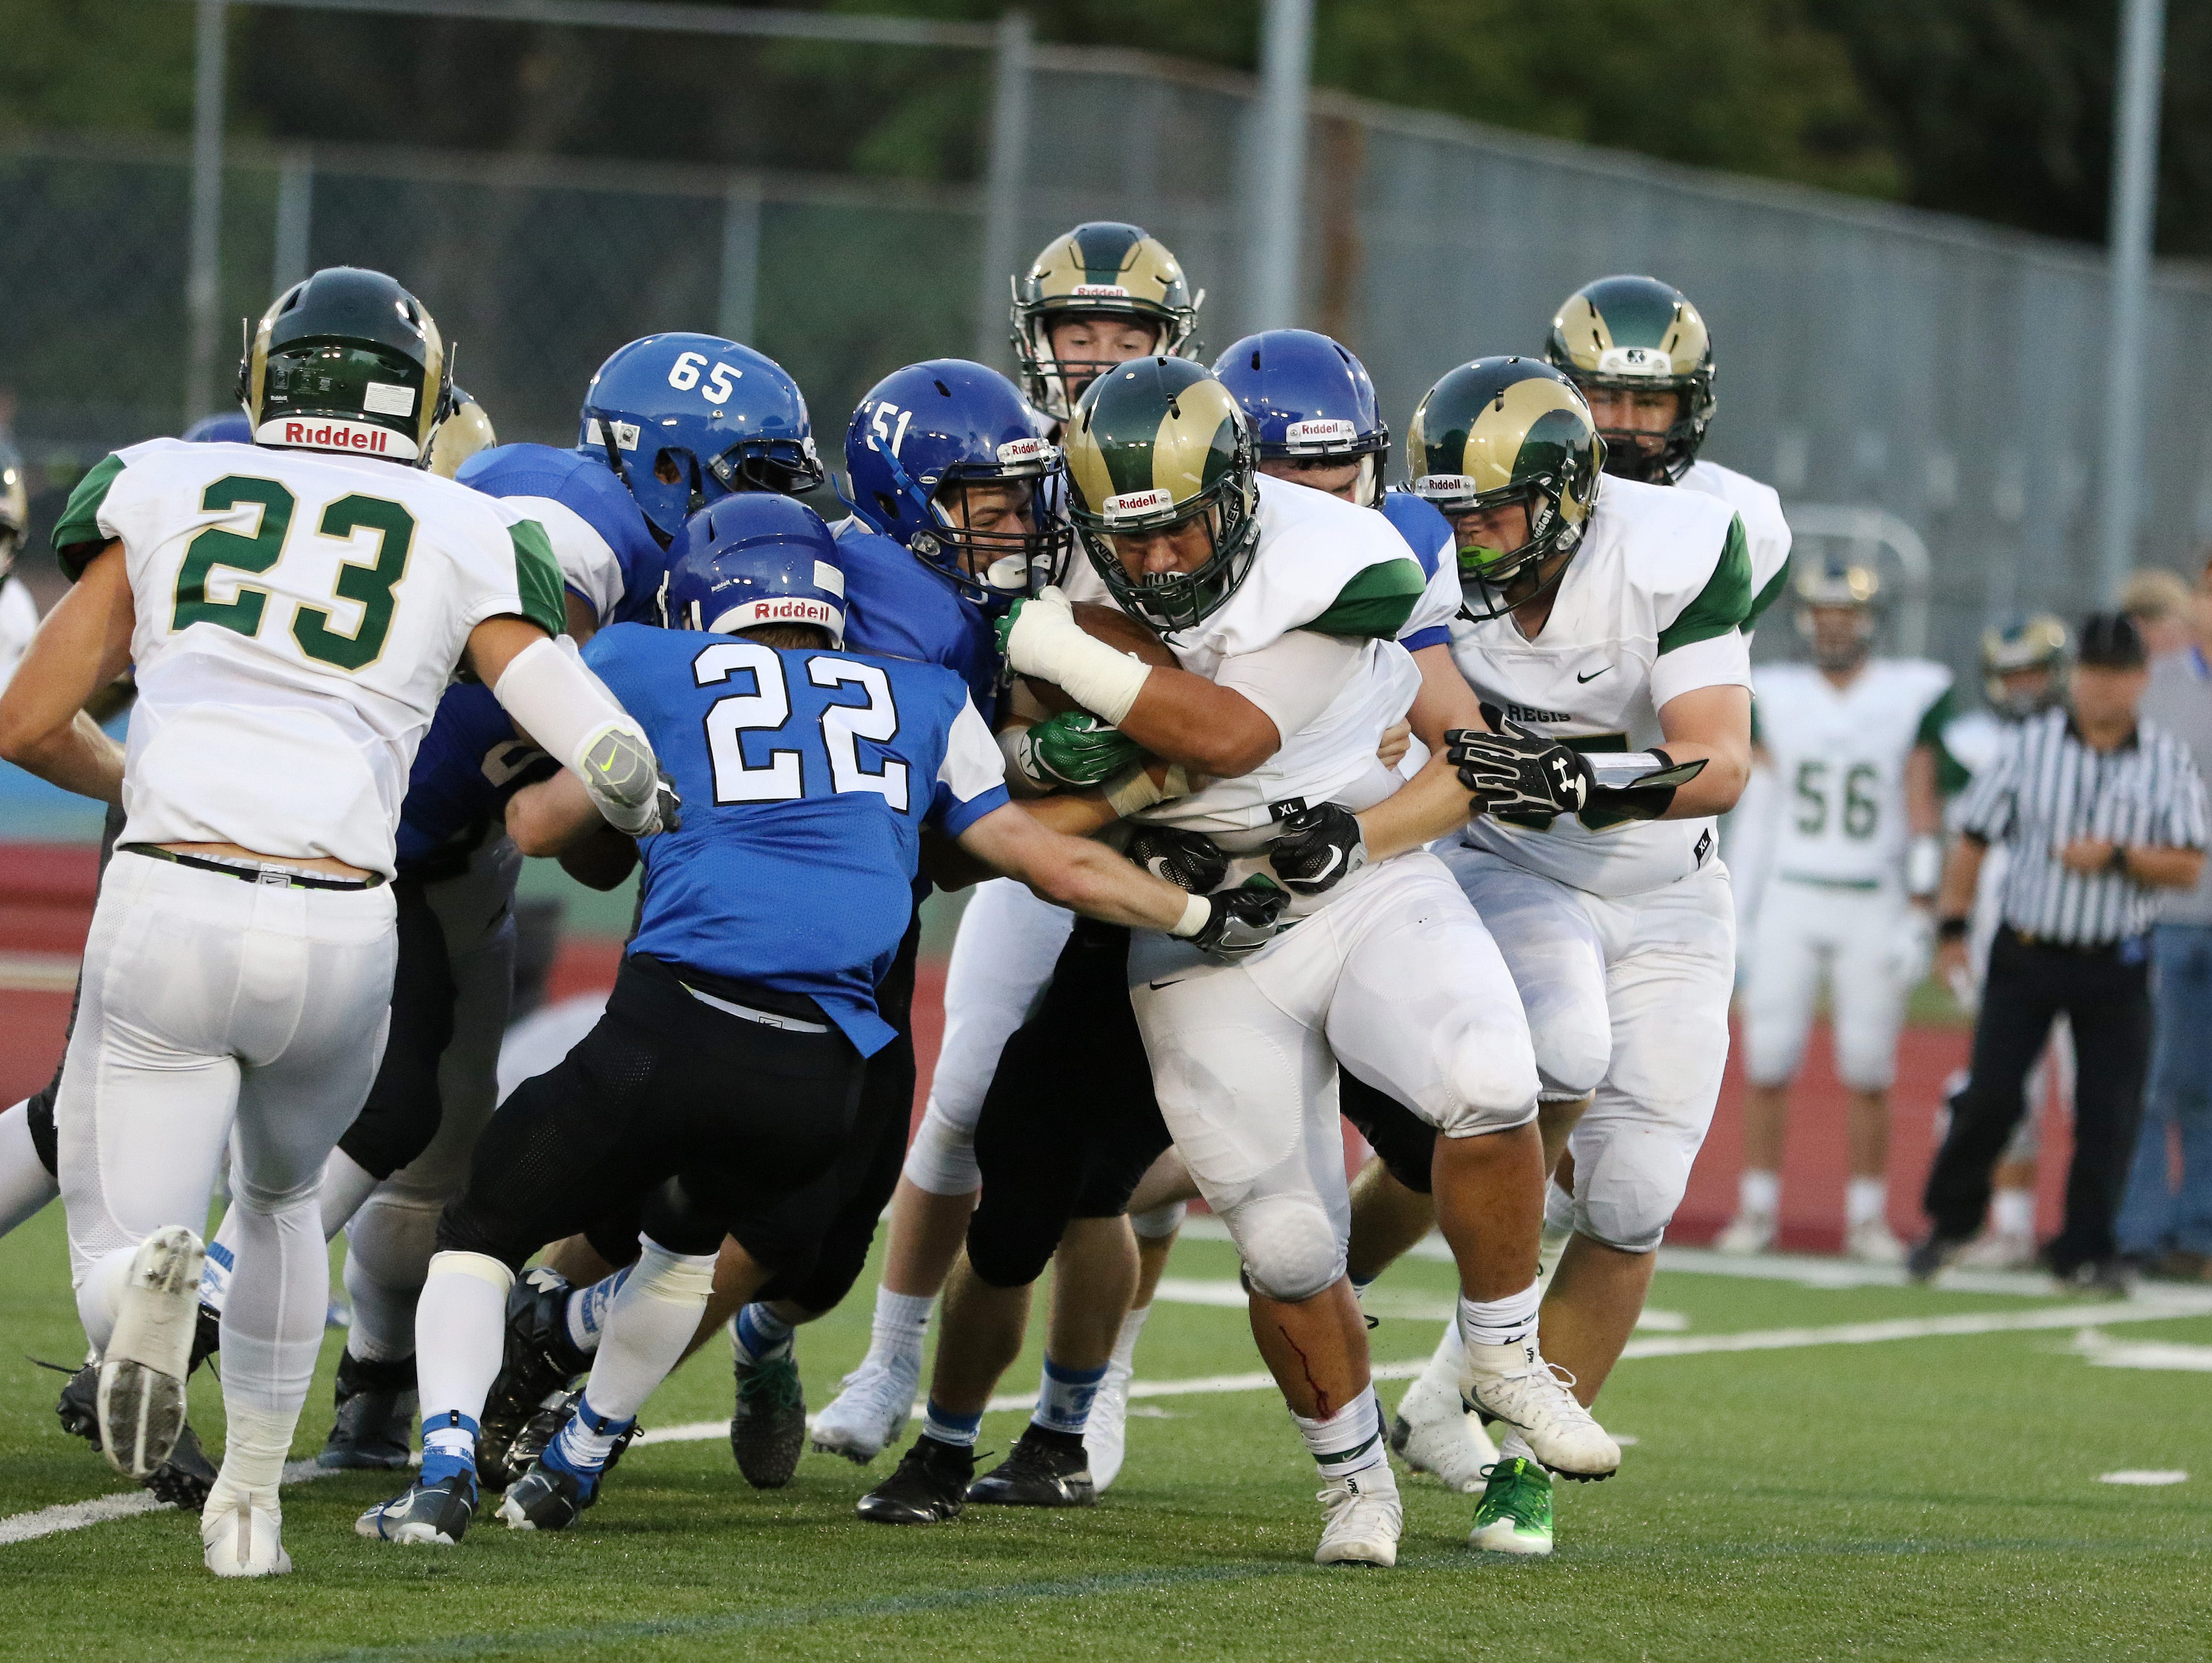 Blanchet defenders surround Regis's Adair Pelayo during a game on Friday, Sept. 2, 2016, at McCulloch Stadium in Salem.